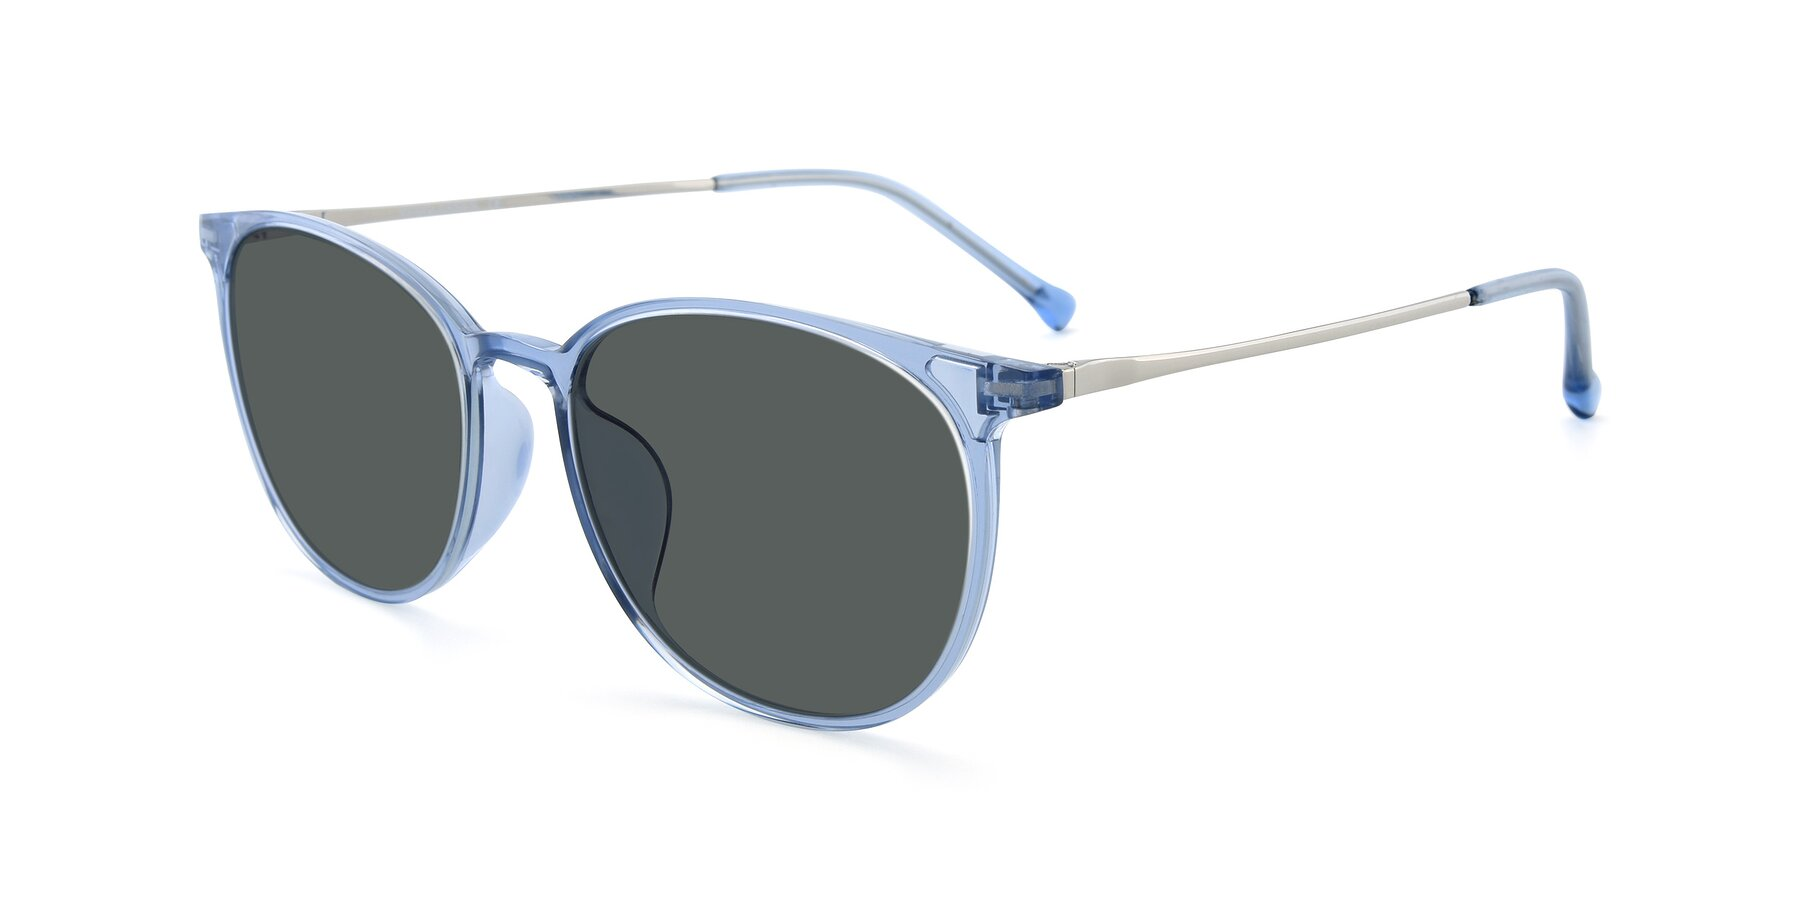 Angle of XC-6006 in Blue Amber-Silver with Gray Polarized Lenses